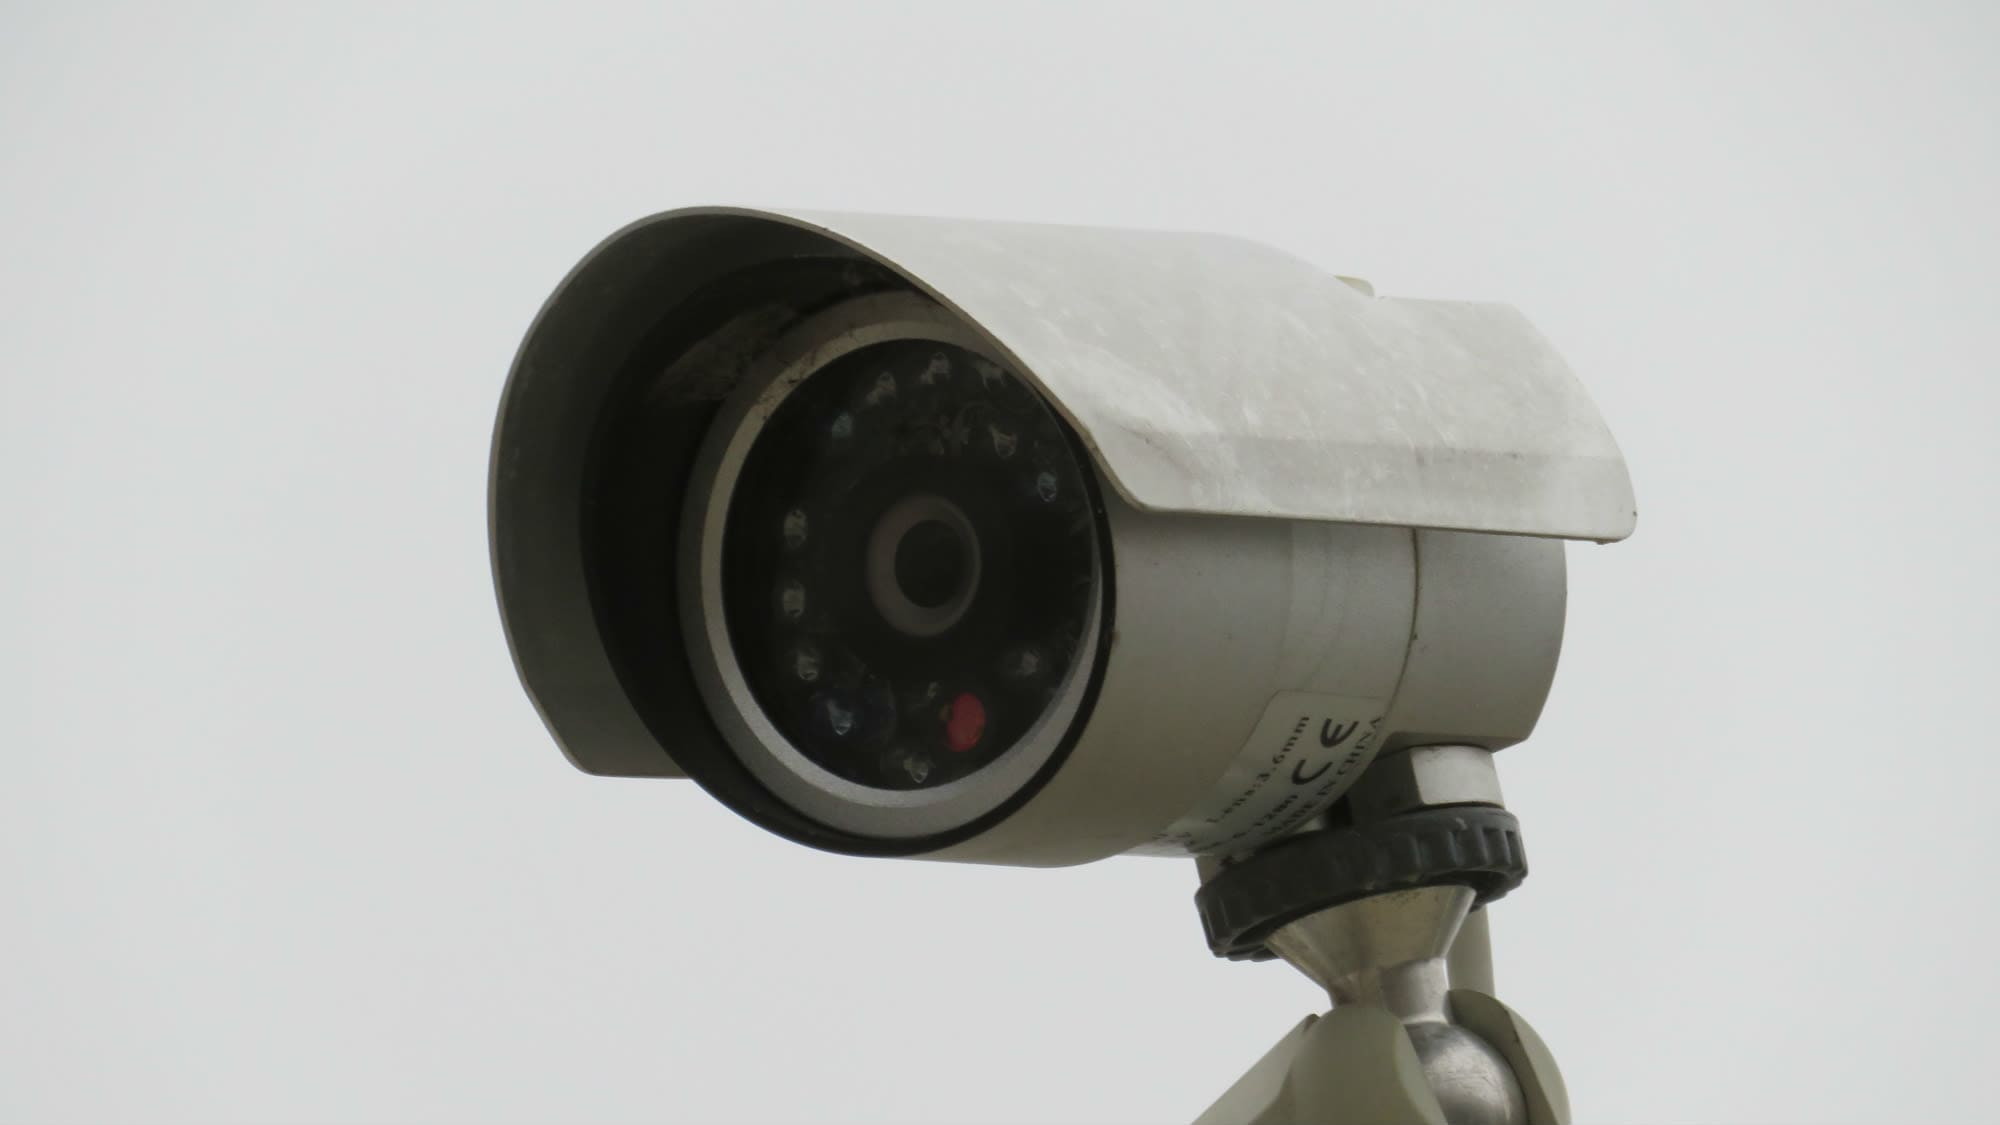 Security camera at Seabrook Self Storage in Seabrook, Maryland